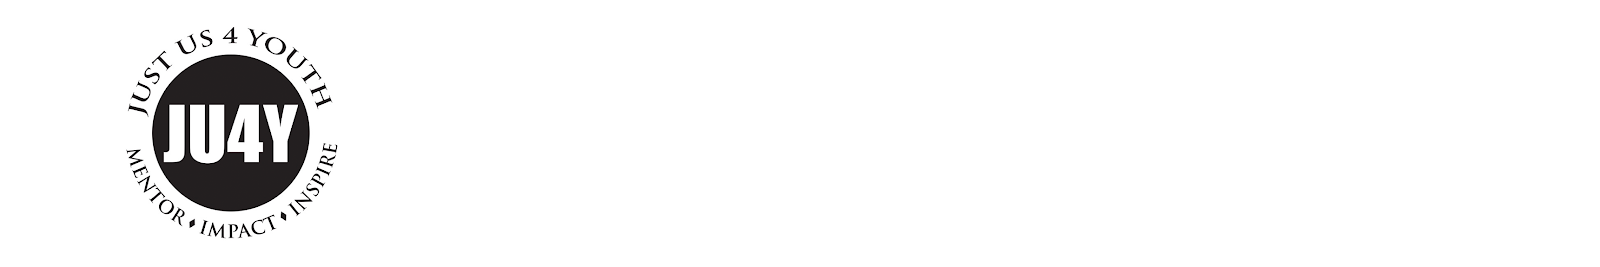 Just Us 4 Youth